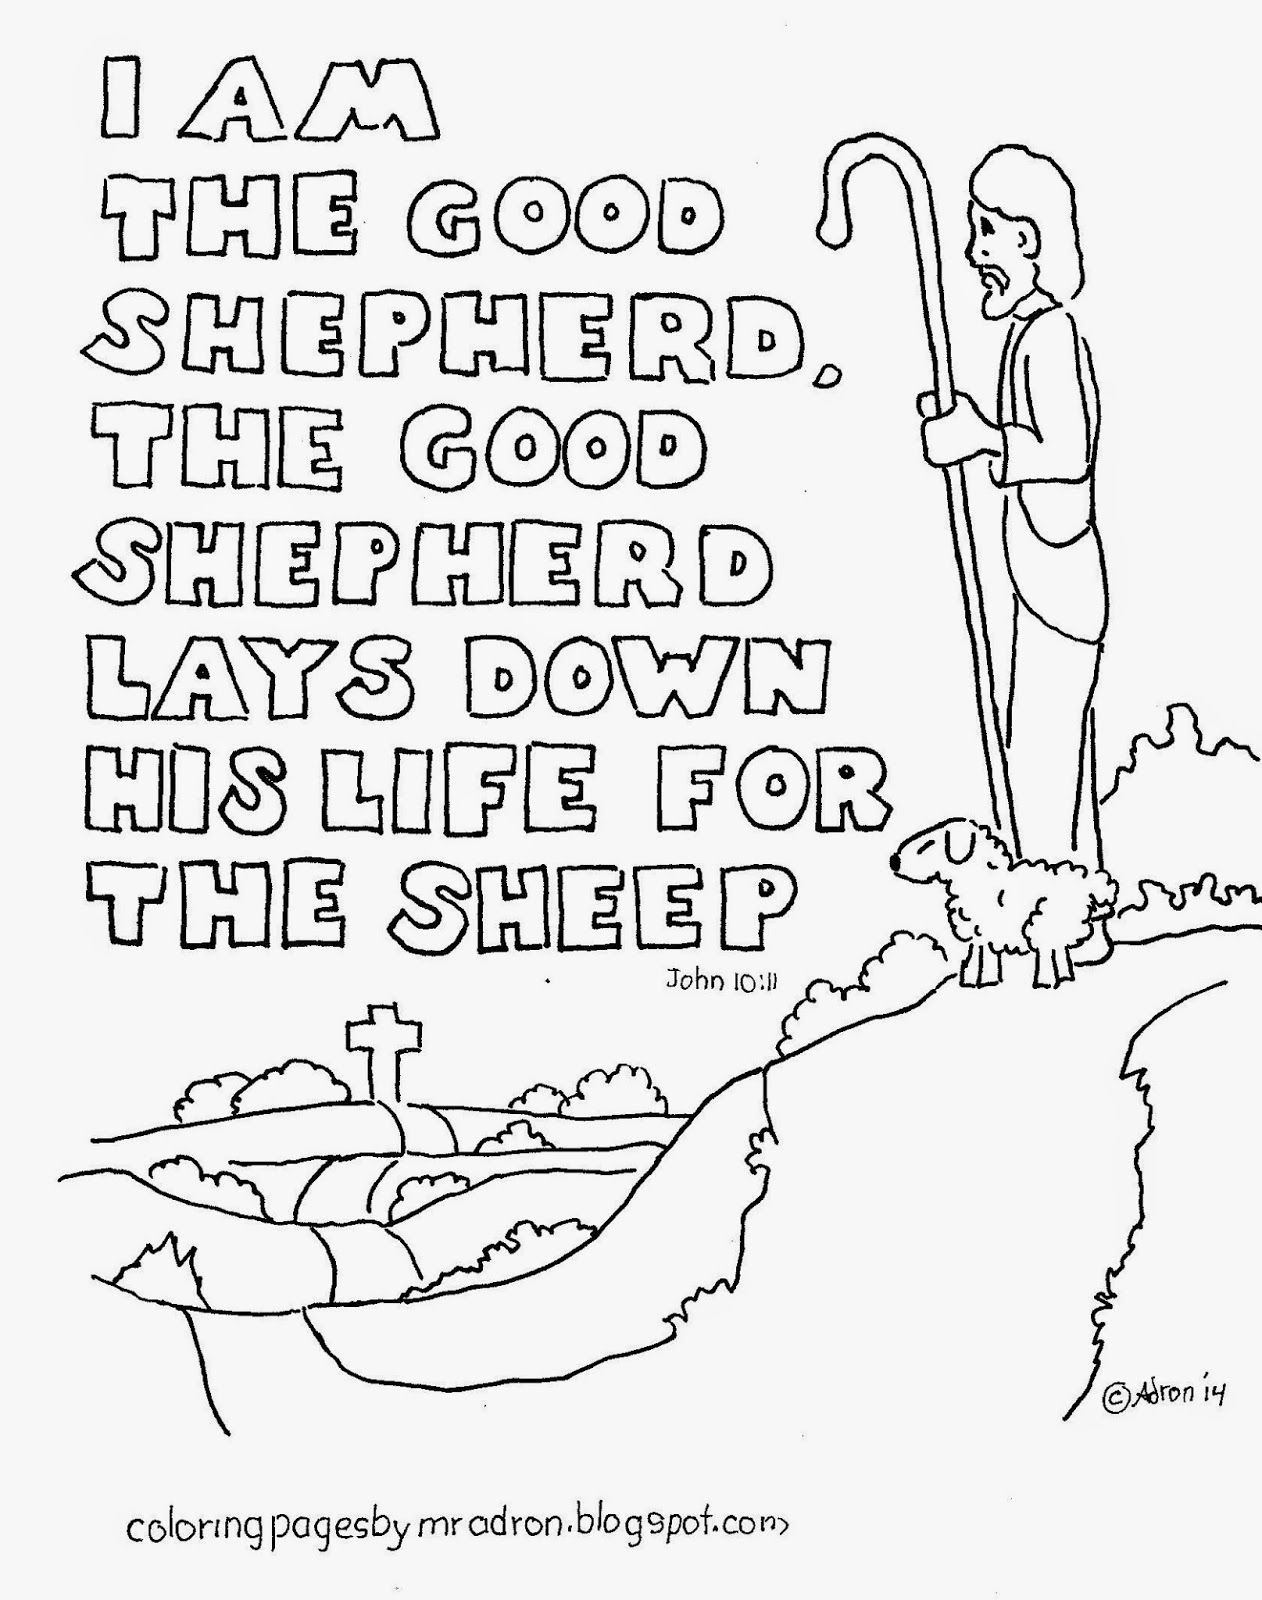 Free bible story coloring pages for kids - Coloring Pages For Kids By Mr Adron I Am The Good Shepherd Free Bible Verse Coloring